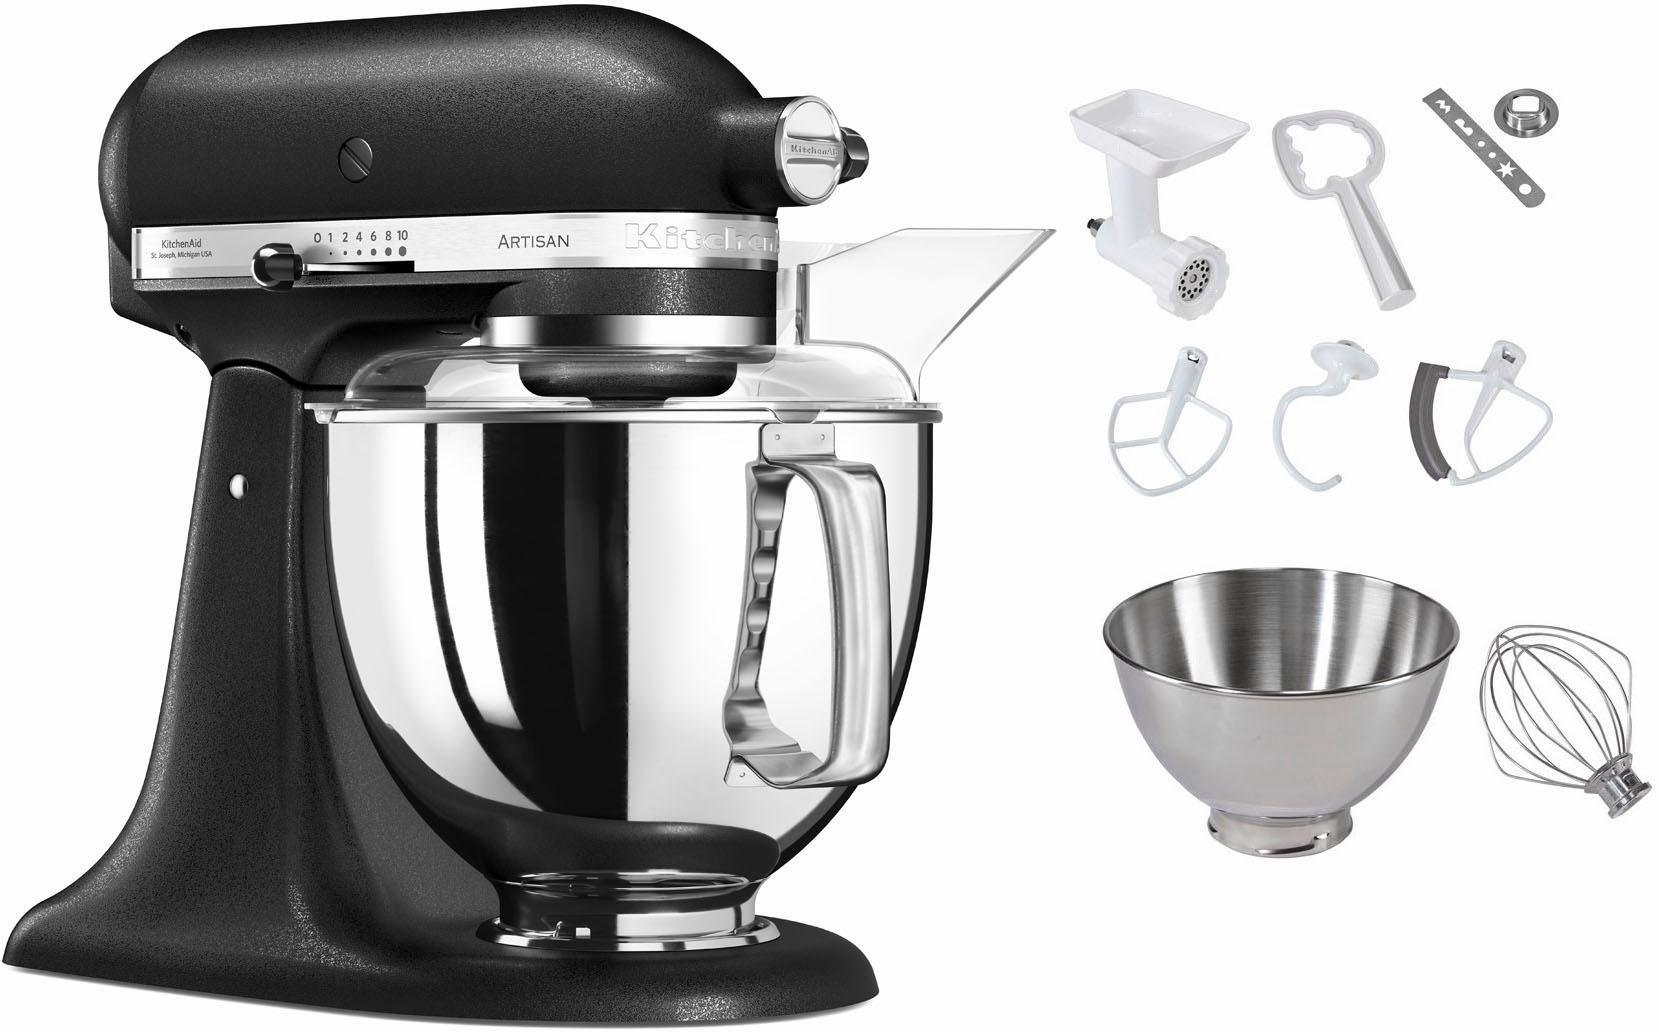 kitchenaid keukenmachine artisan 5ksm150psebk gietijzer. Black Bedroom Furniture Sets. Home Design Ideas